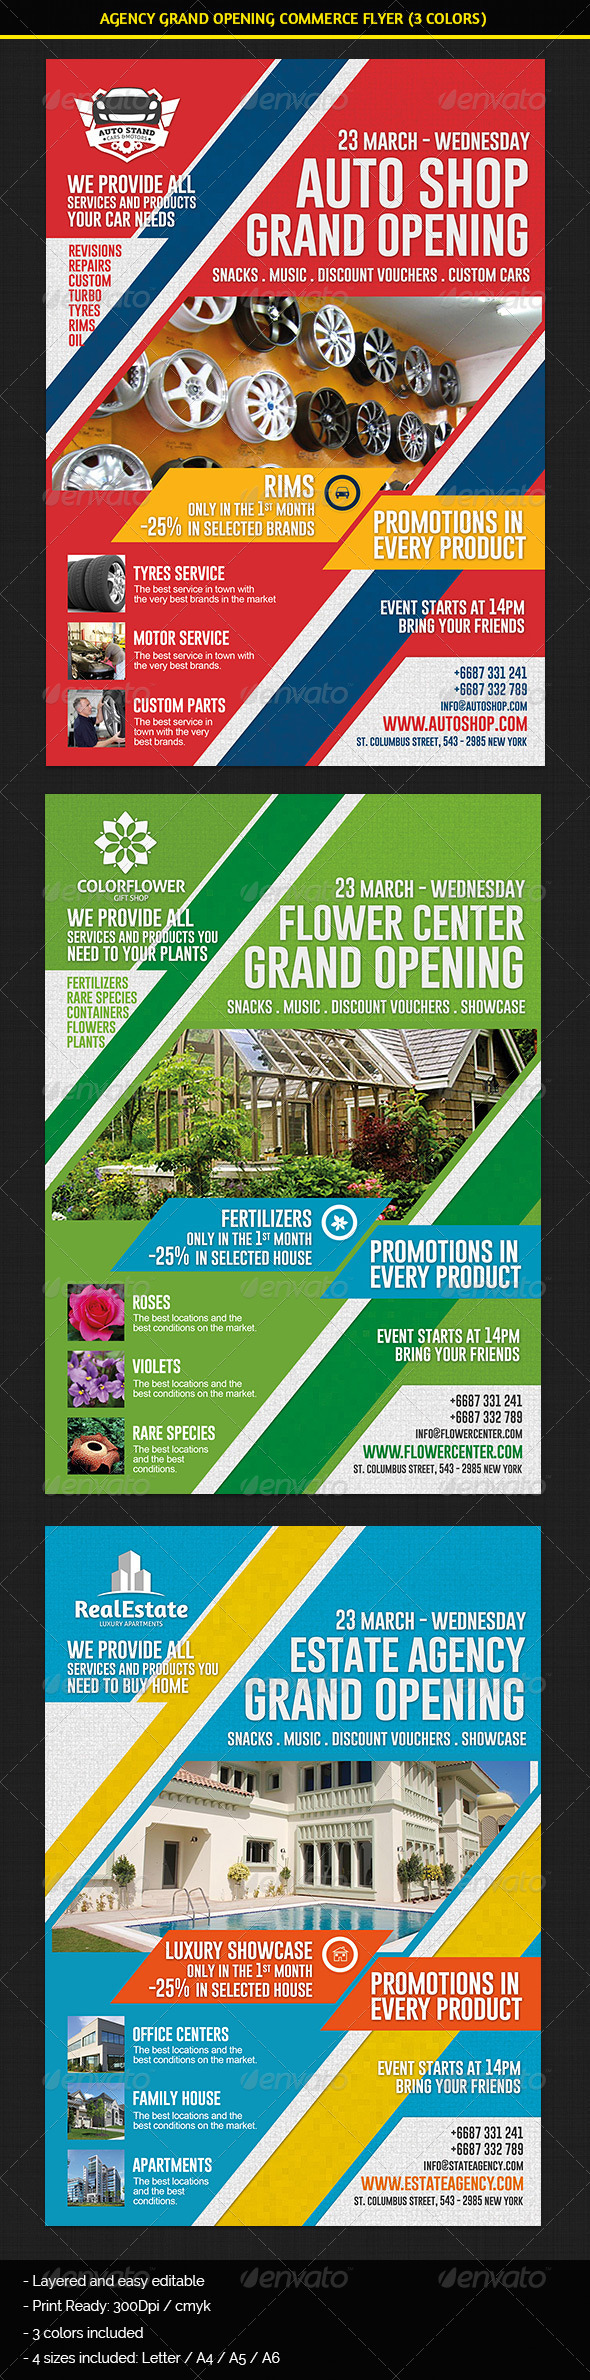 GraphicRiver Agency & Shop Grand Opening Commerce Flyer 7119972